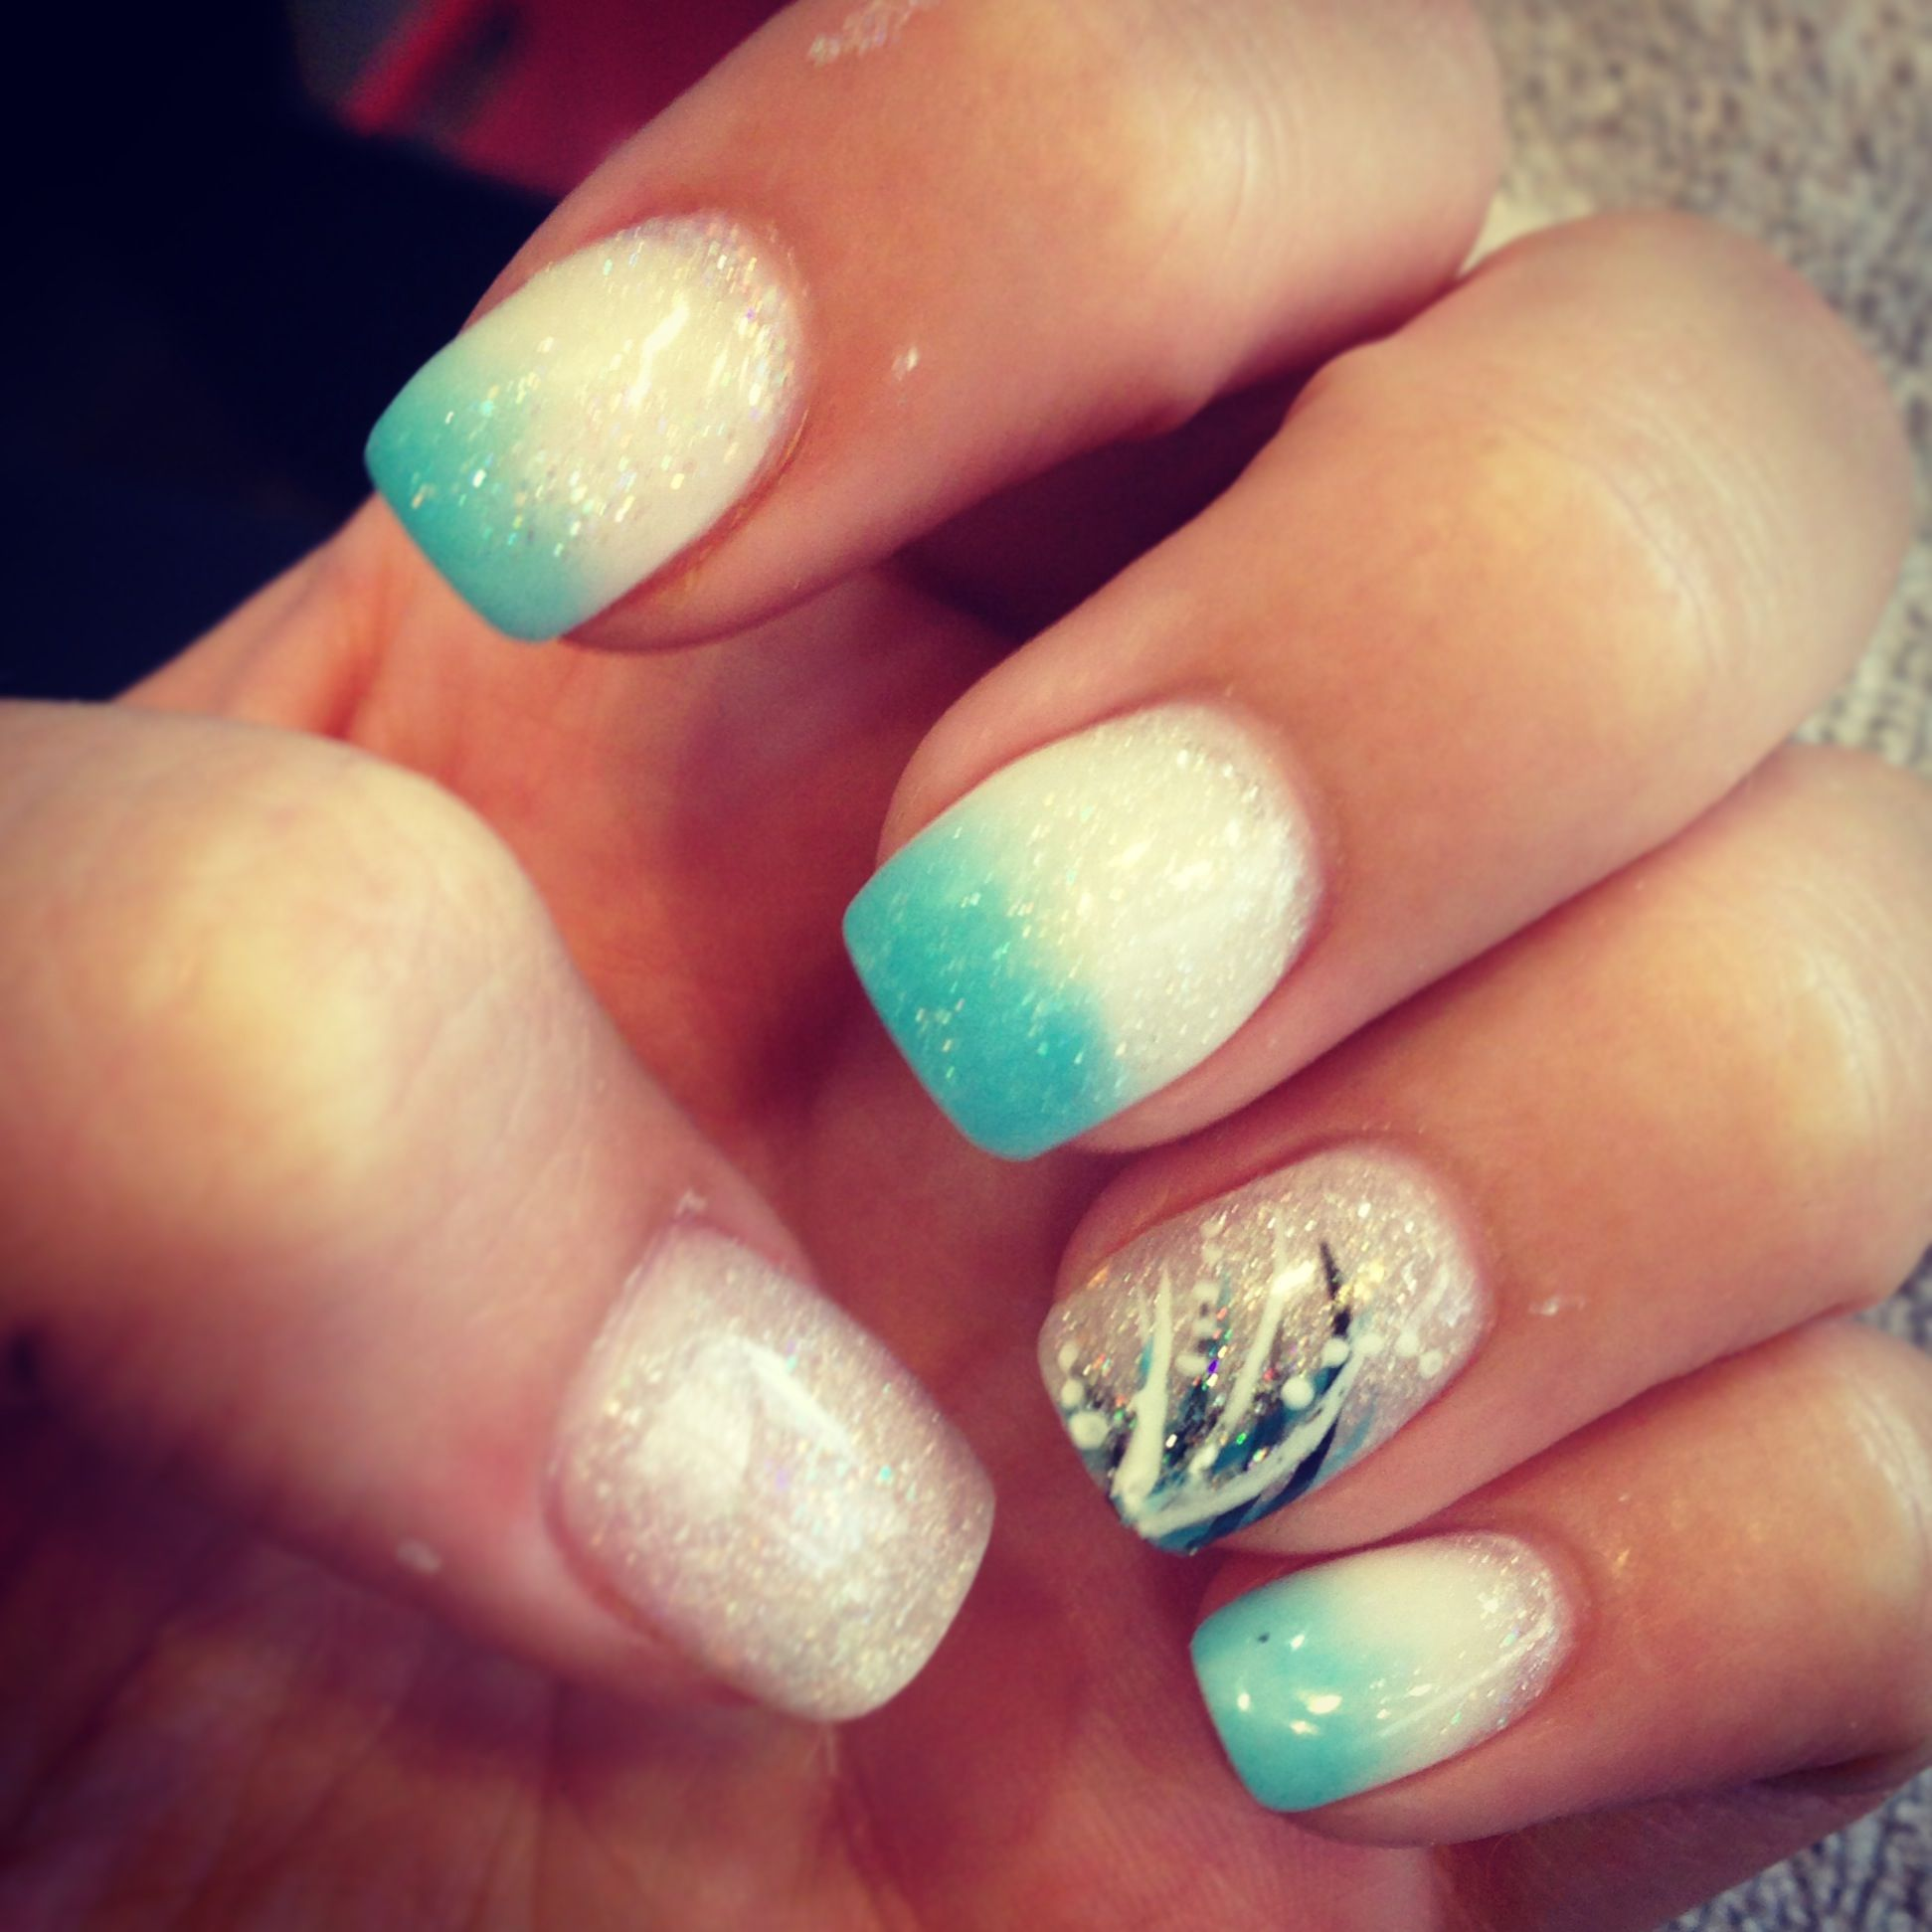 Prom Nail Designs: My Prom Acrylic Nails :) #prom